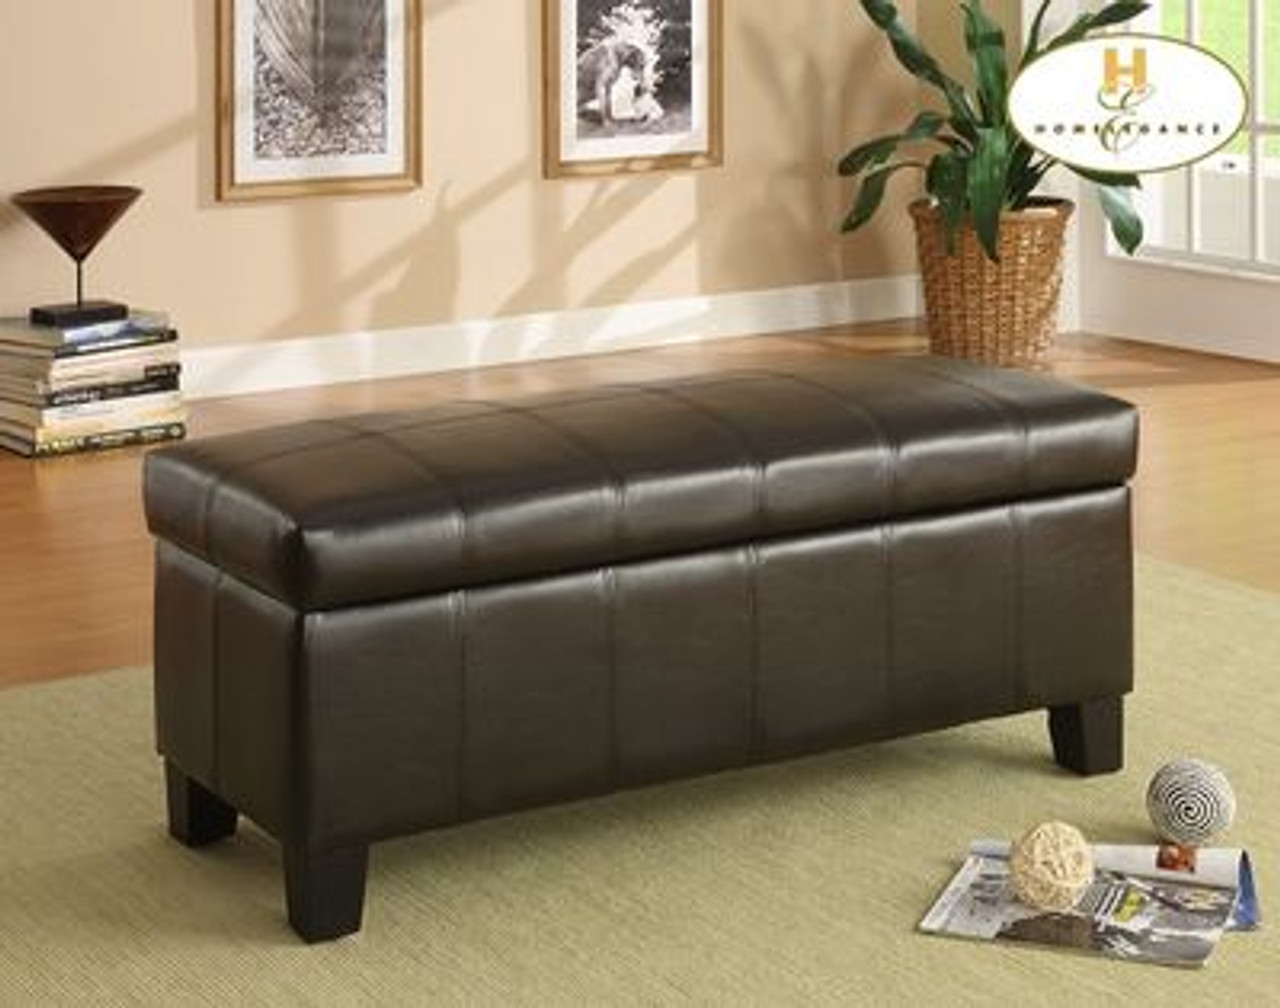 Tremendous Homelegance Clair Top Lift Storage Bench In Brown Vinyl Caraccident5 Cool Chair Designs And Ideas Caraccident5Info